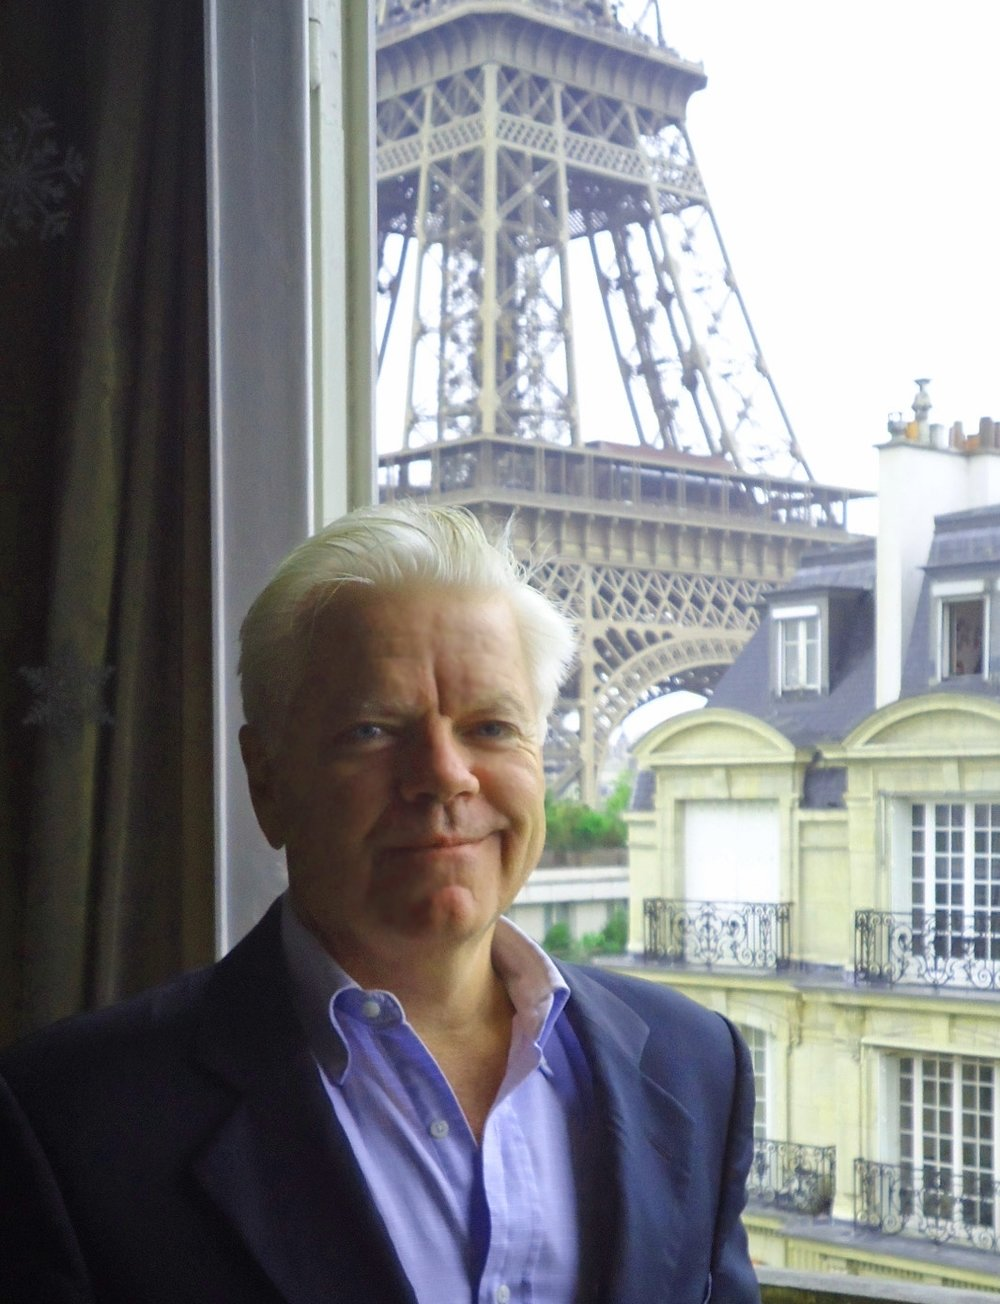 Managing Member: Franklin Craig Franklin Craig worked for 30 years in the investment banking world in Paris and London concentrating in the natural resources and hotel sectors. Mr. Craig has invested in and also managed several real estate syndicate investments in the US and in France for over 20 years. Since 2008, Mr. Craig has personally invested in the Detroit real estate market and helped organize Brick Home Management, LLC of Detroit. Mr. Craig is an investor and the Managing Member of 5 of the 6 LLCs which have been set up and managed by Brick Home Management. Mr. Craig deals with fundraising and investor relations as well as monitoring the LLC accounting and tax compliance.